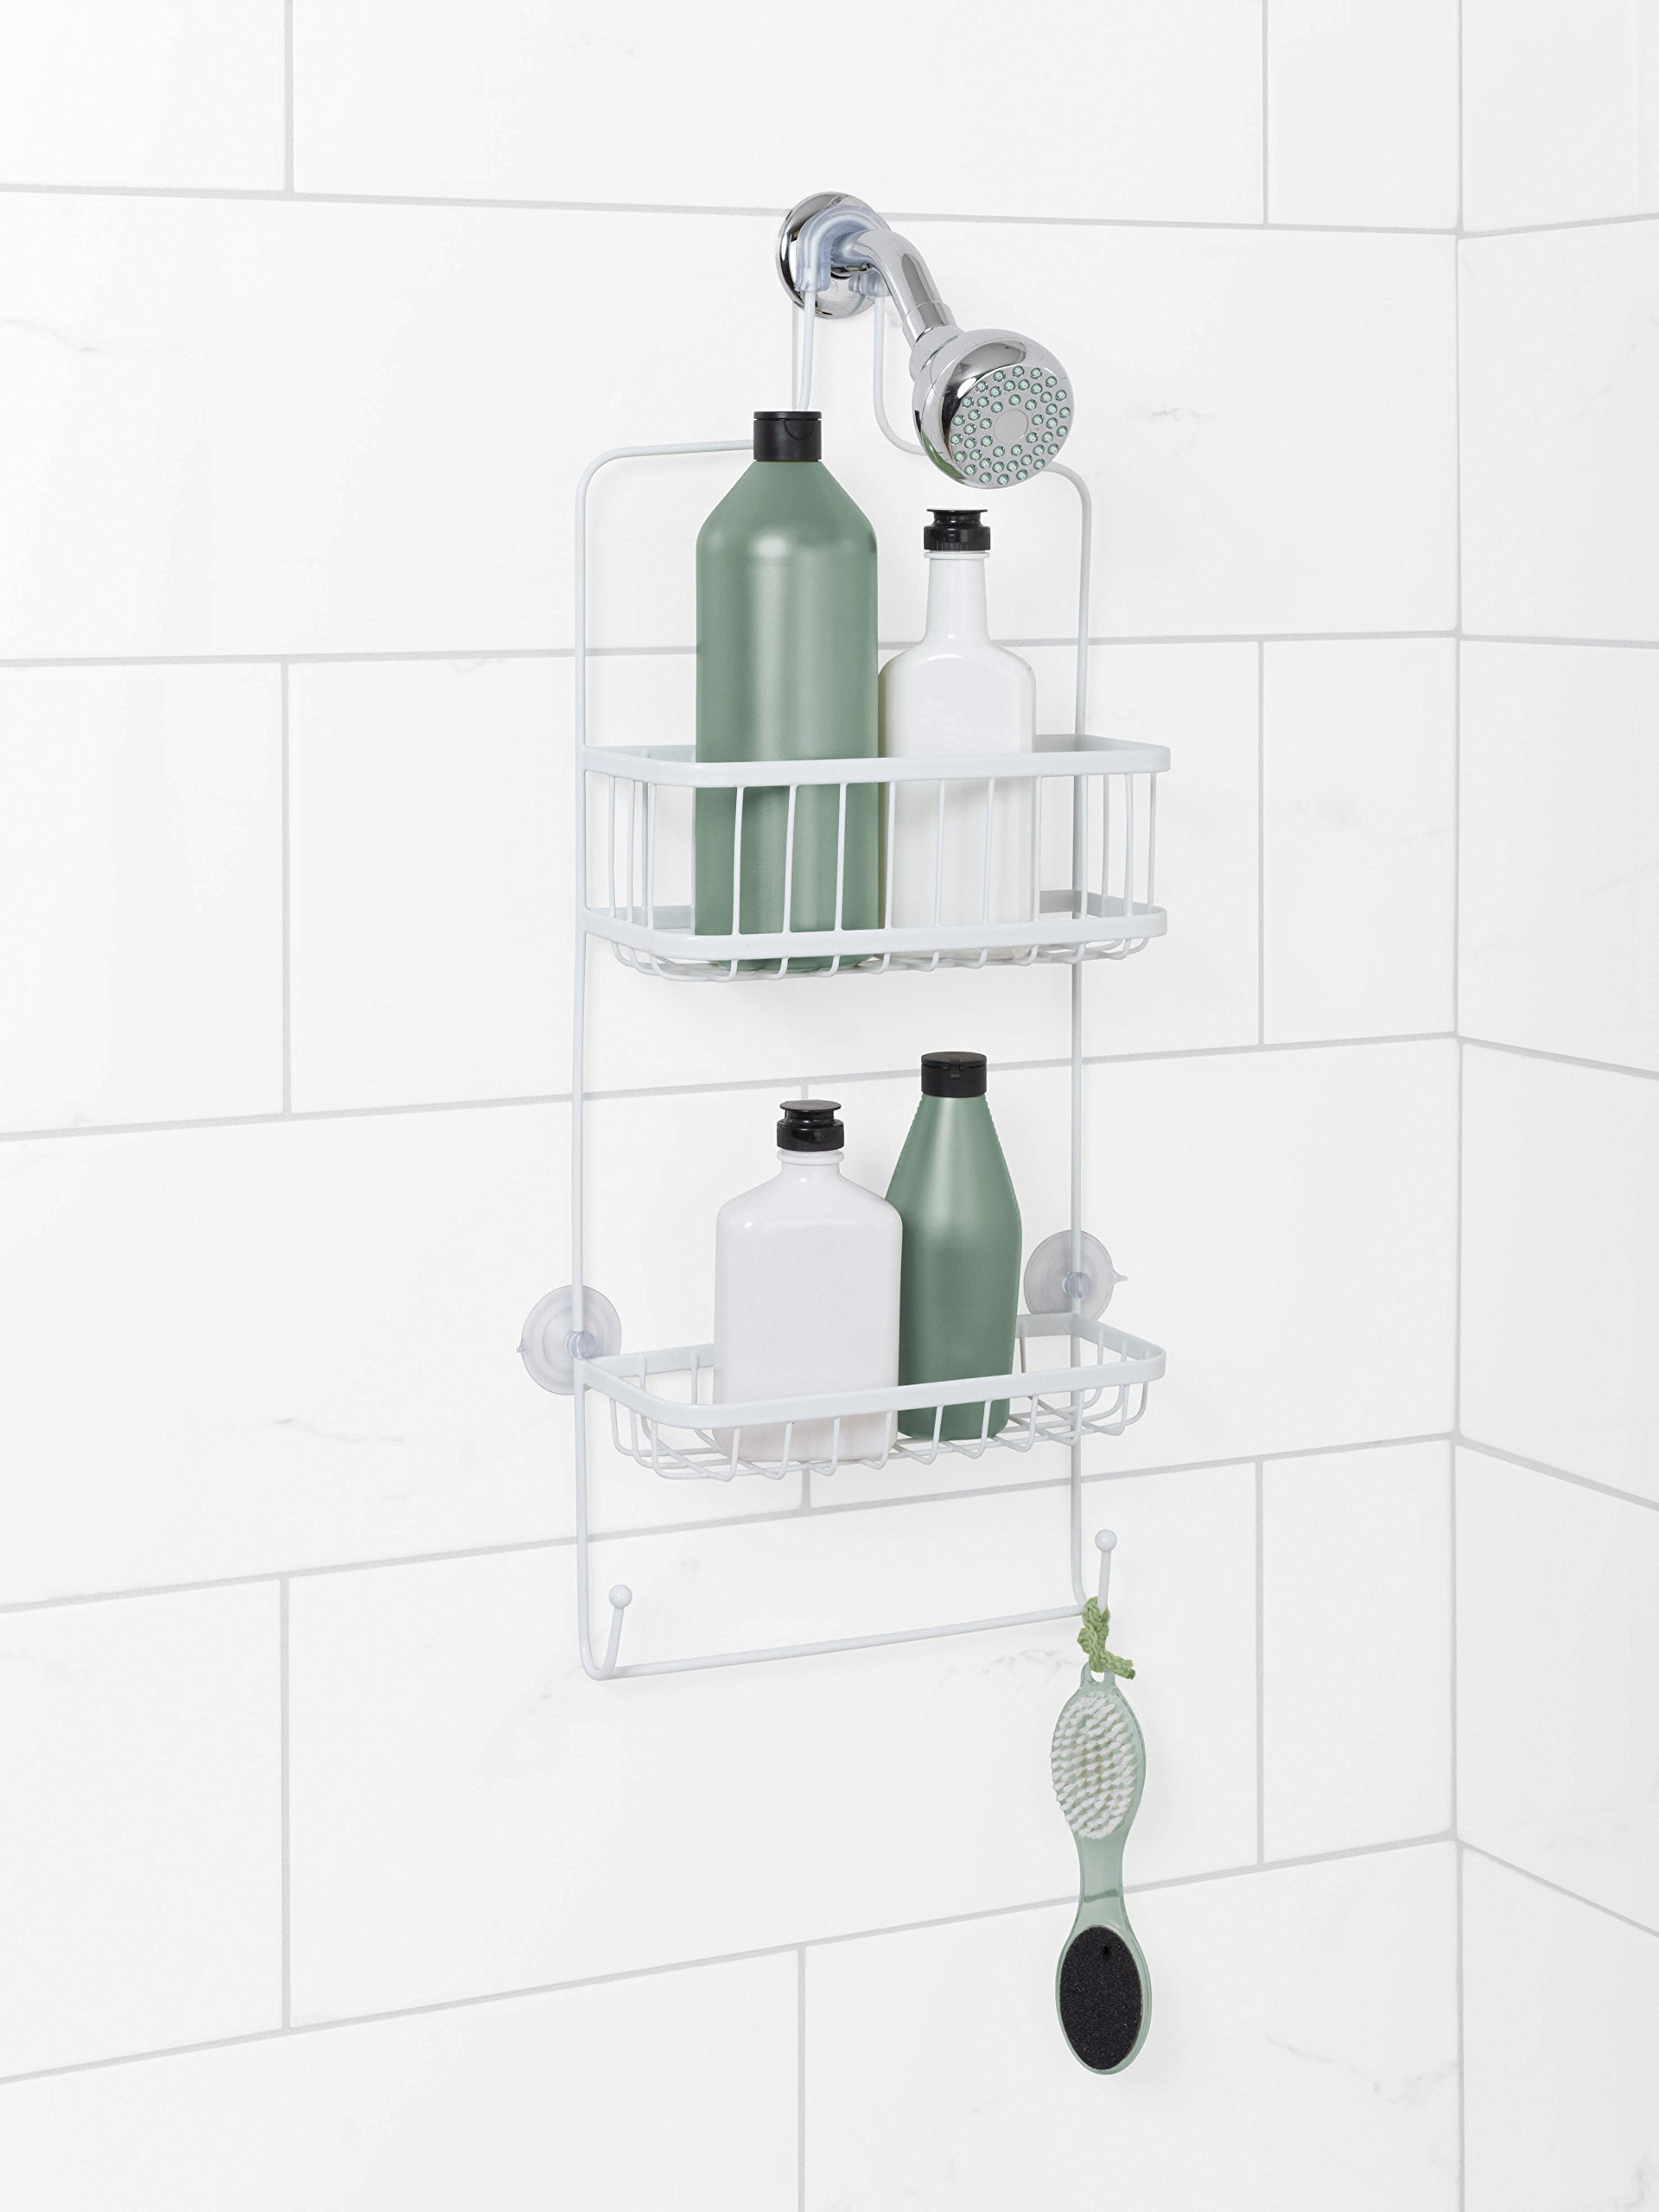 Zenna Home 7617WW, Over-the-Showerhead Caddy, White by Zenna Home (Image #2)